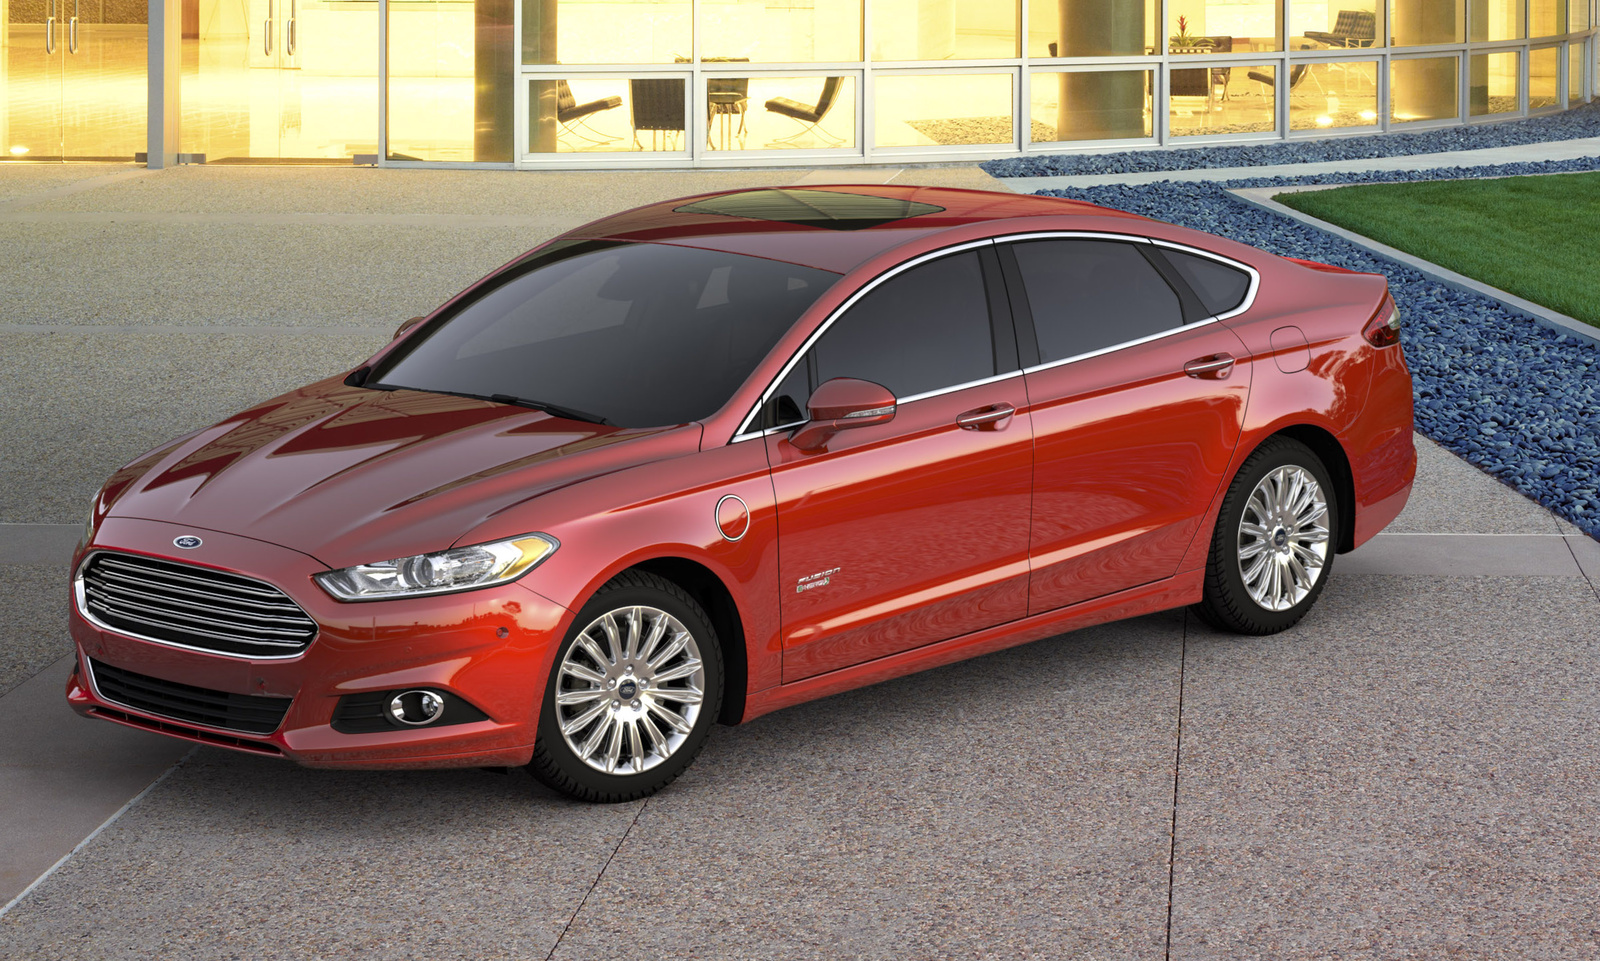 Ford Fusion Used Car Price